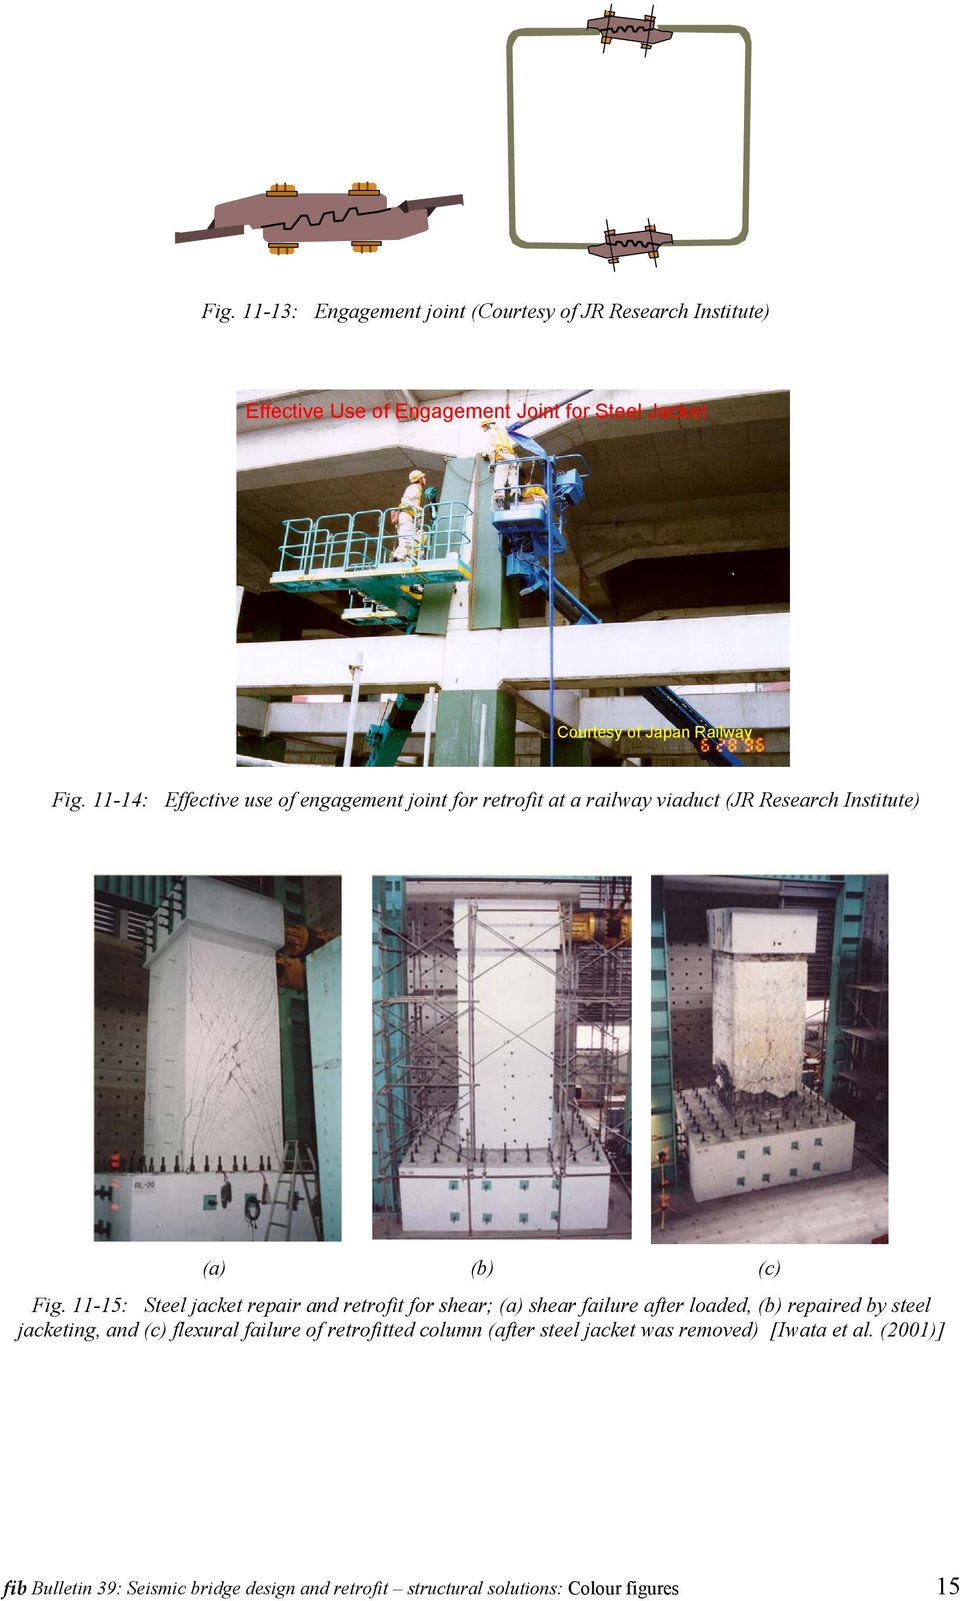 11-15: Steel jacket repair and retrofit for shear; (a) shear failure after loaded, repaired by steel jacketing, and (c) flexural failure of